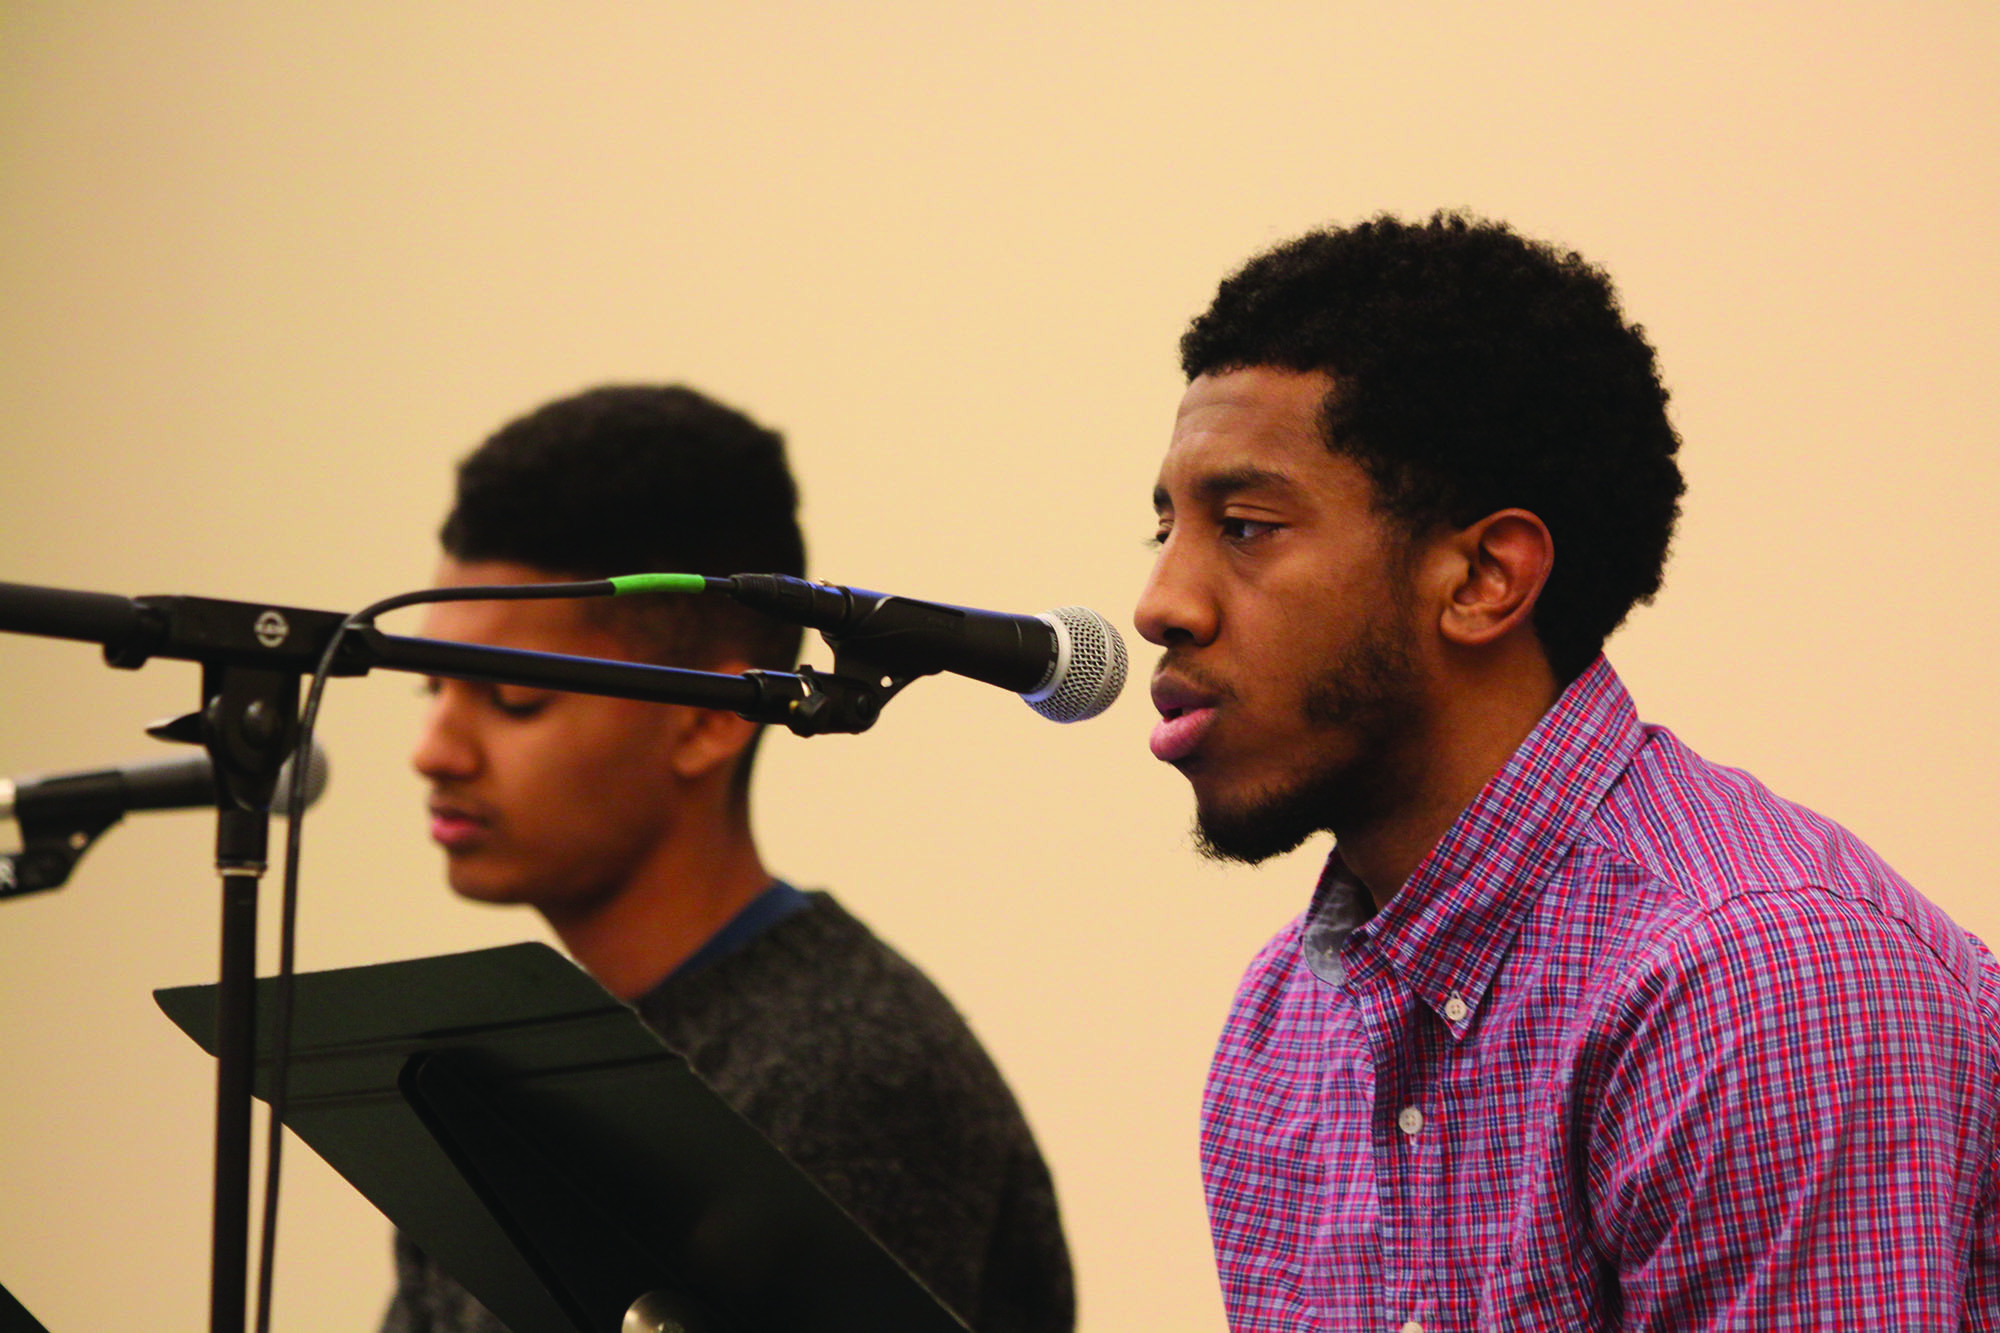 Jamerson speaks into microphone